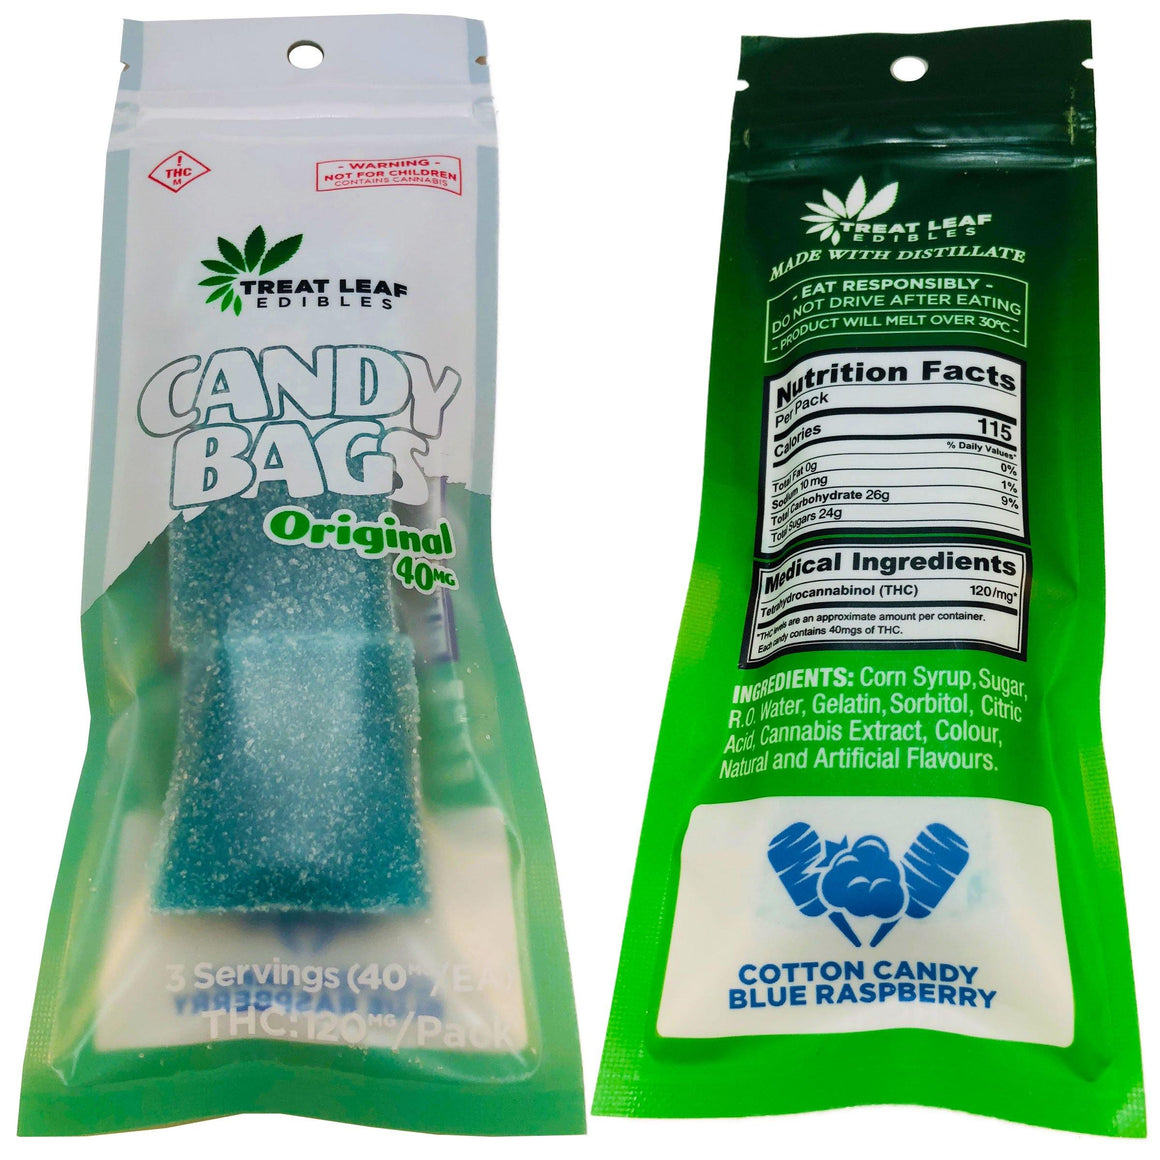 Treat Leaf Edibles Canby Bags Original 120mg THC